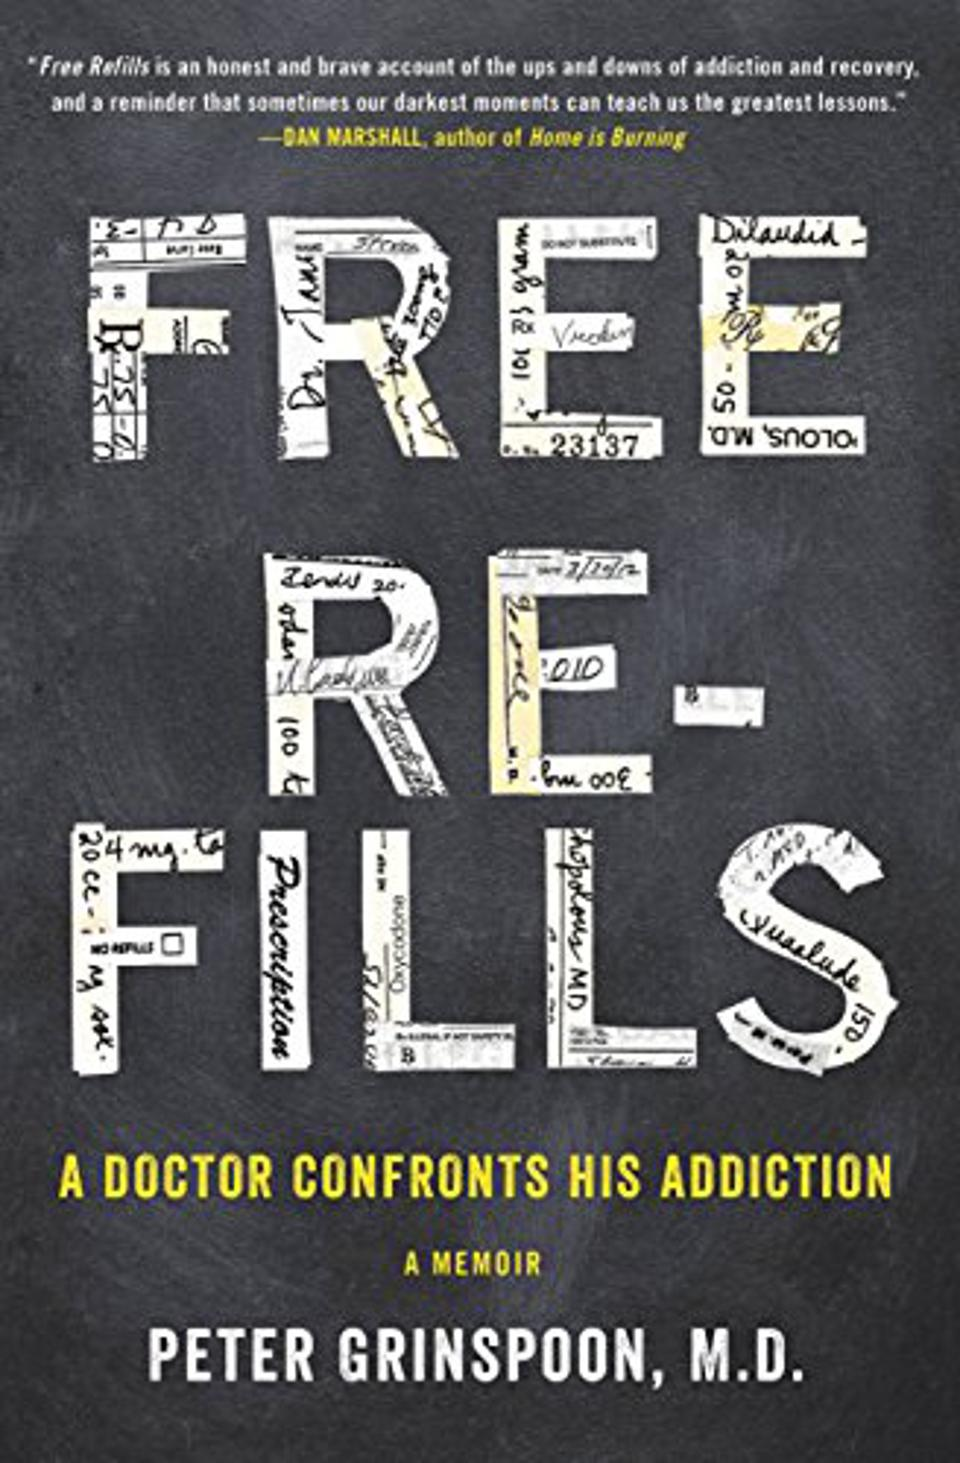 Free Refills - A Doctor Confronts His Addiction by Peter Grinspoon, M.D.